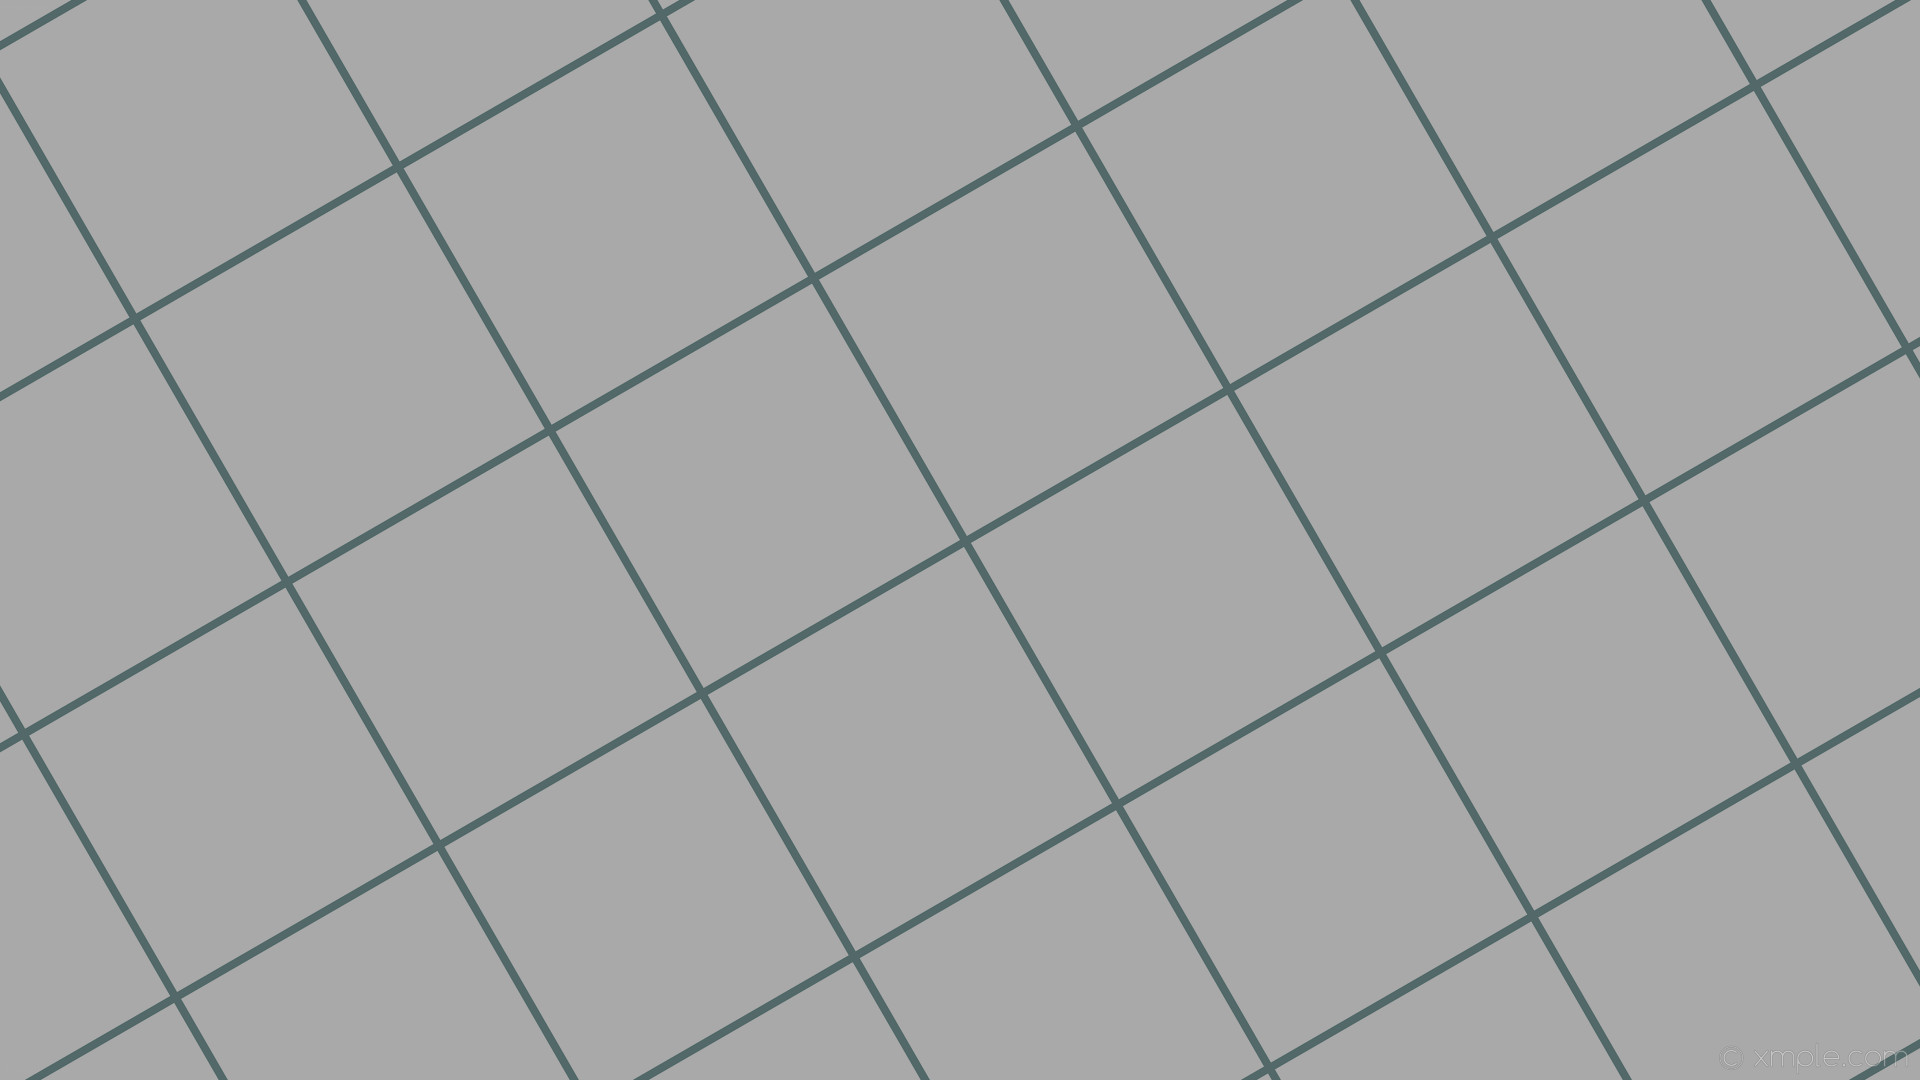 wallpaper graph paper grey grid dark gray dark slate gray #a9a9a9 #2f4f4f  30°